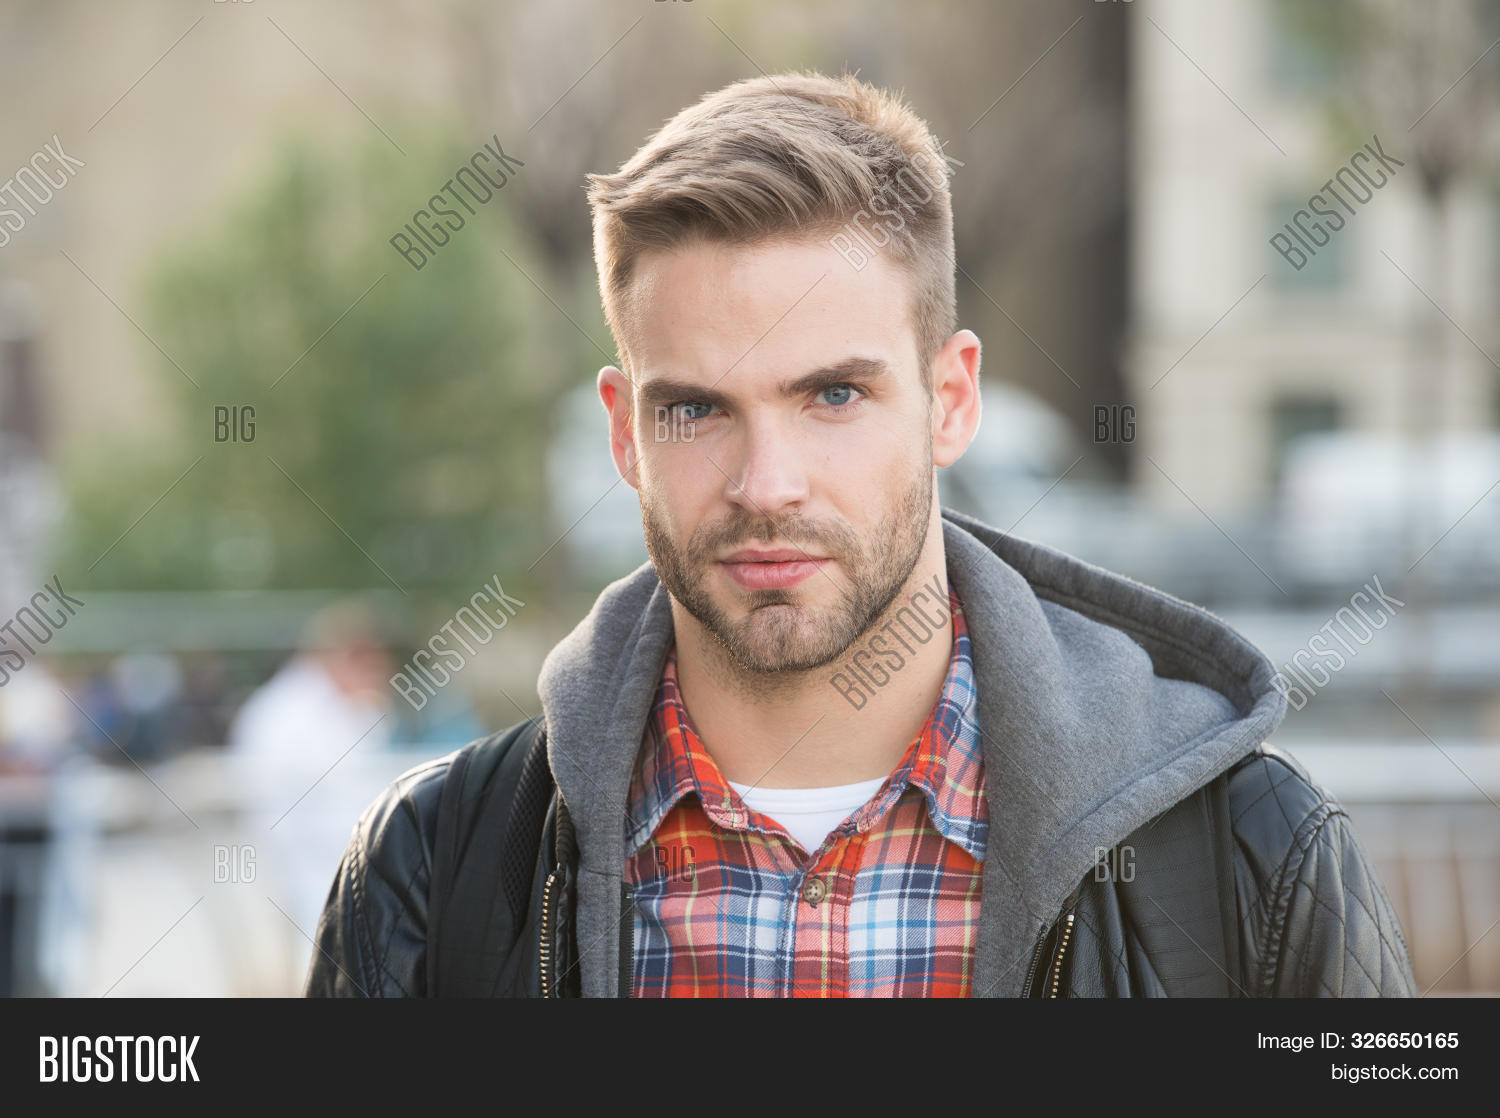 Handsome guy portrait. Facial hair and skin care concept. Handsome face. Masculine appearance. Handsome man unshaven face and stylish hair. Caucasian man urban background. Bearded man in casual style.